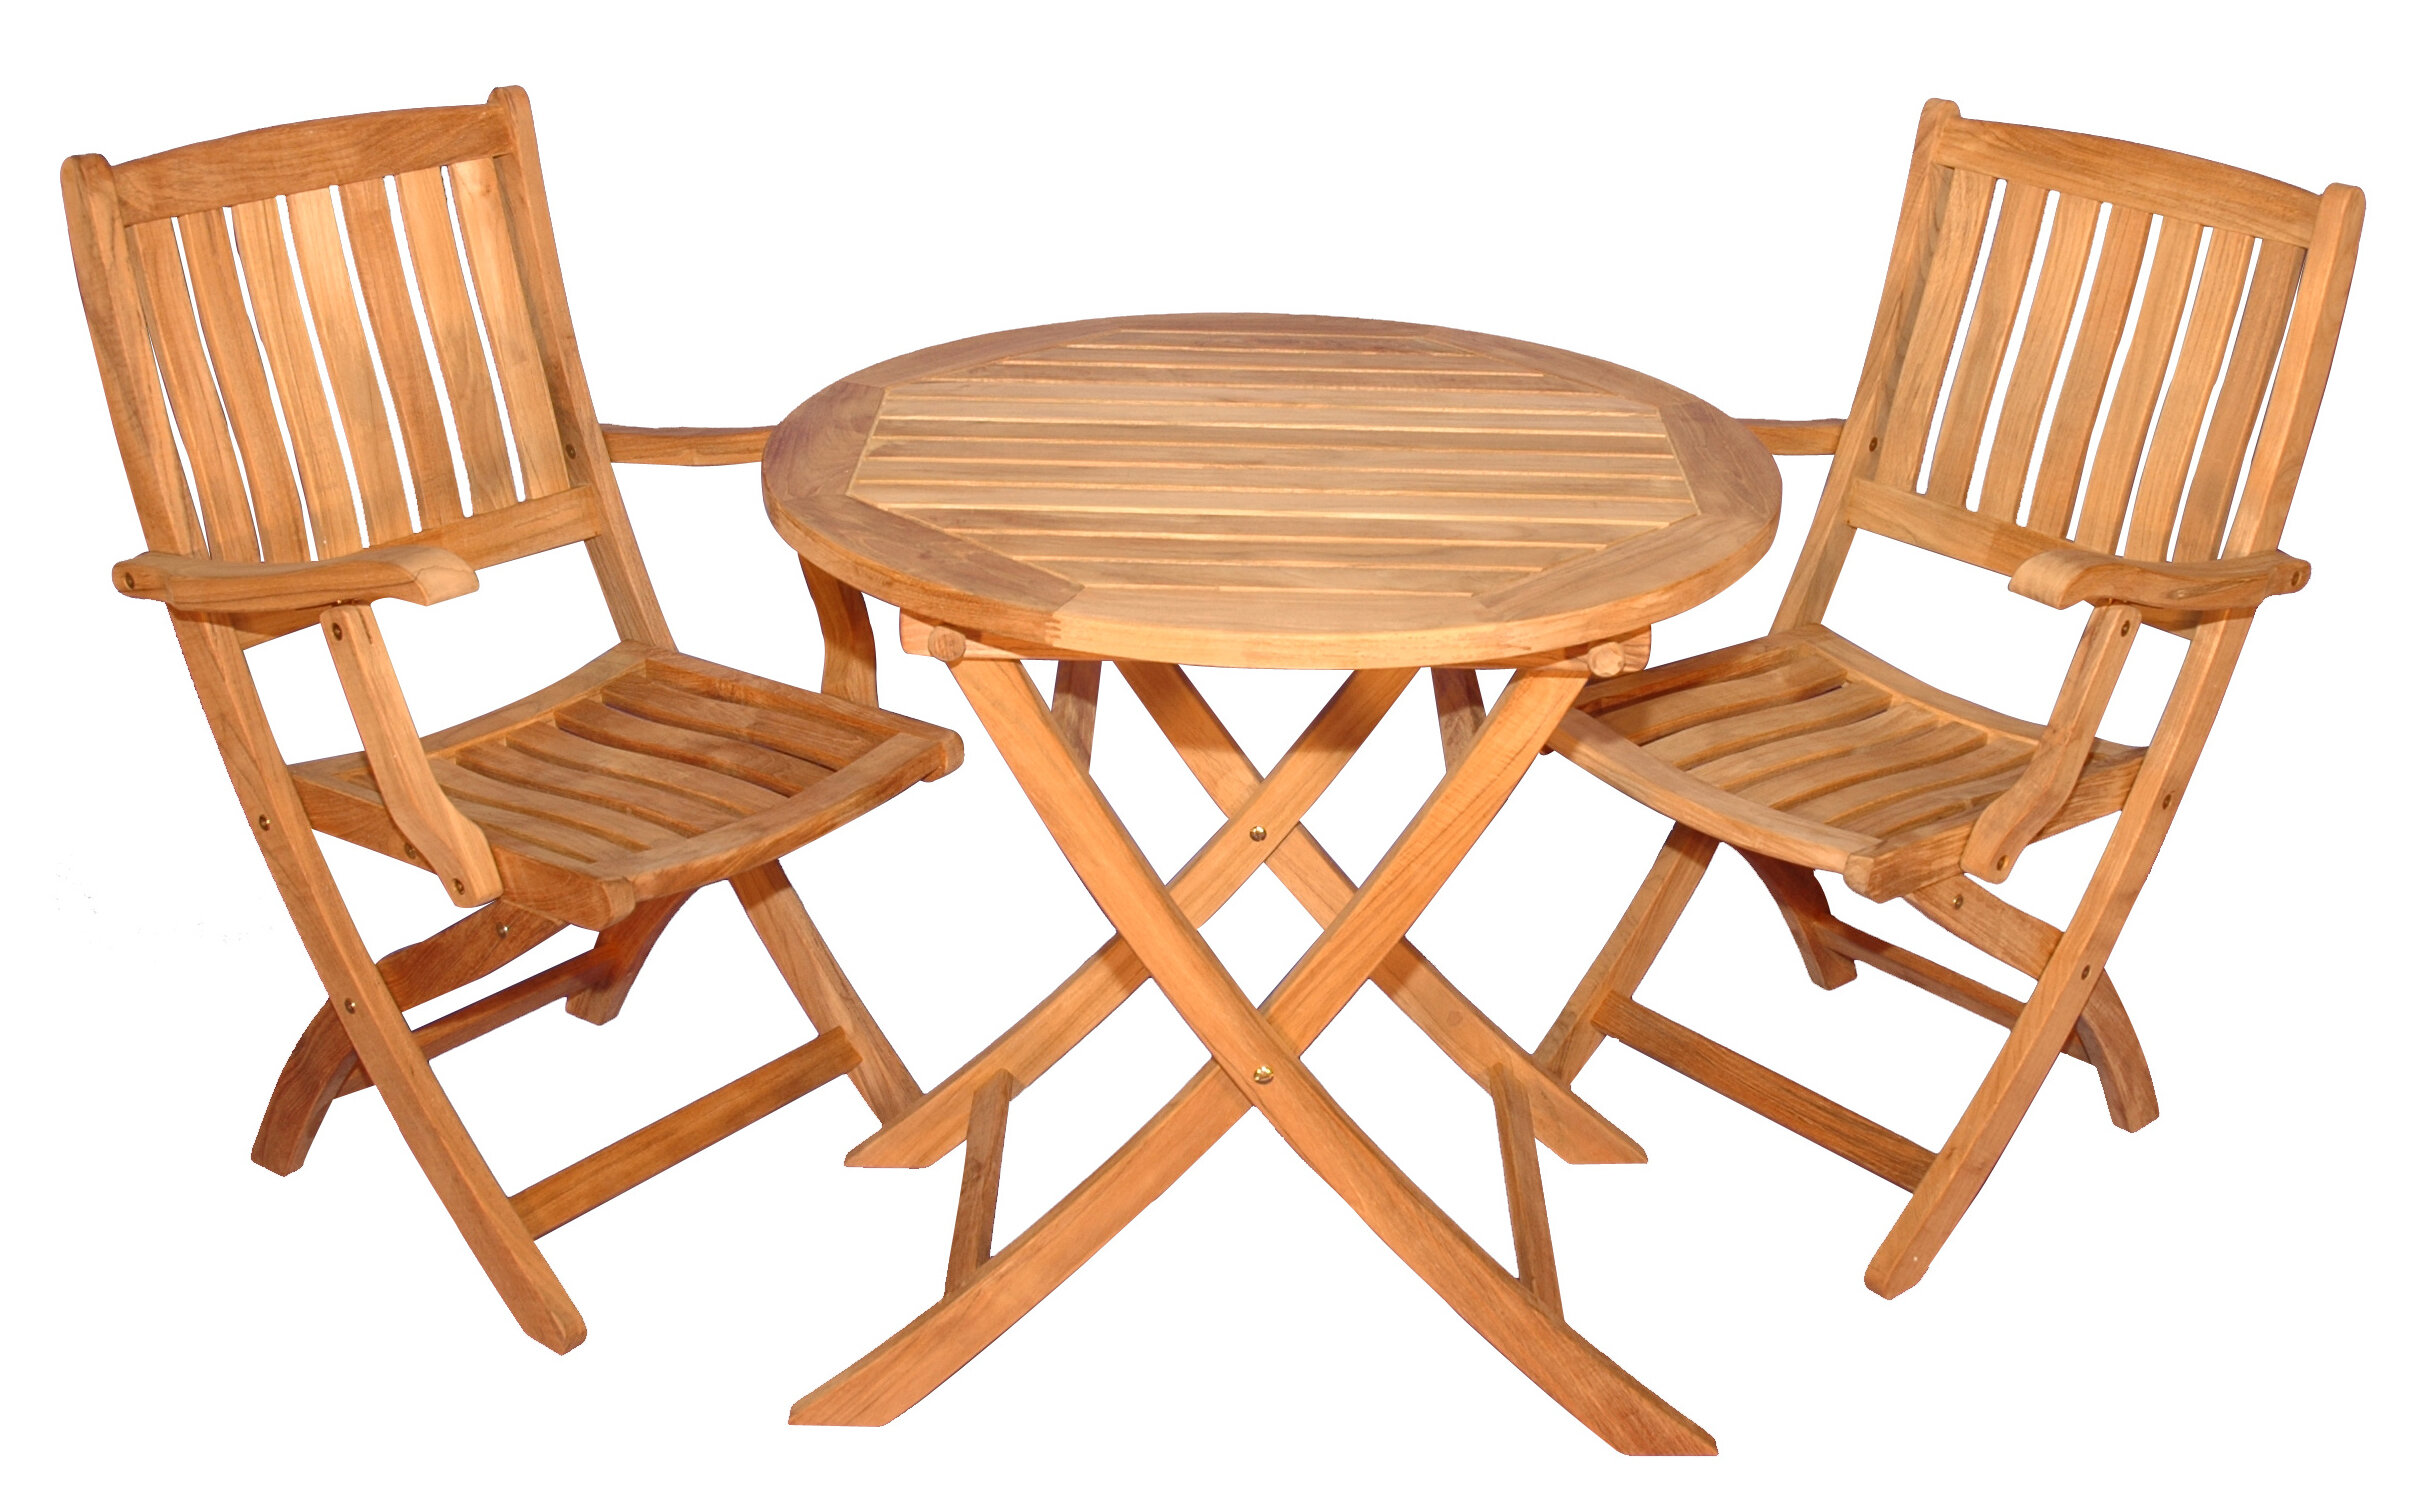 Cleaning Teak Patio Furniture.How To Clean And Care For Teak Furniture Wayfair